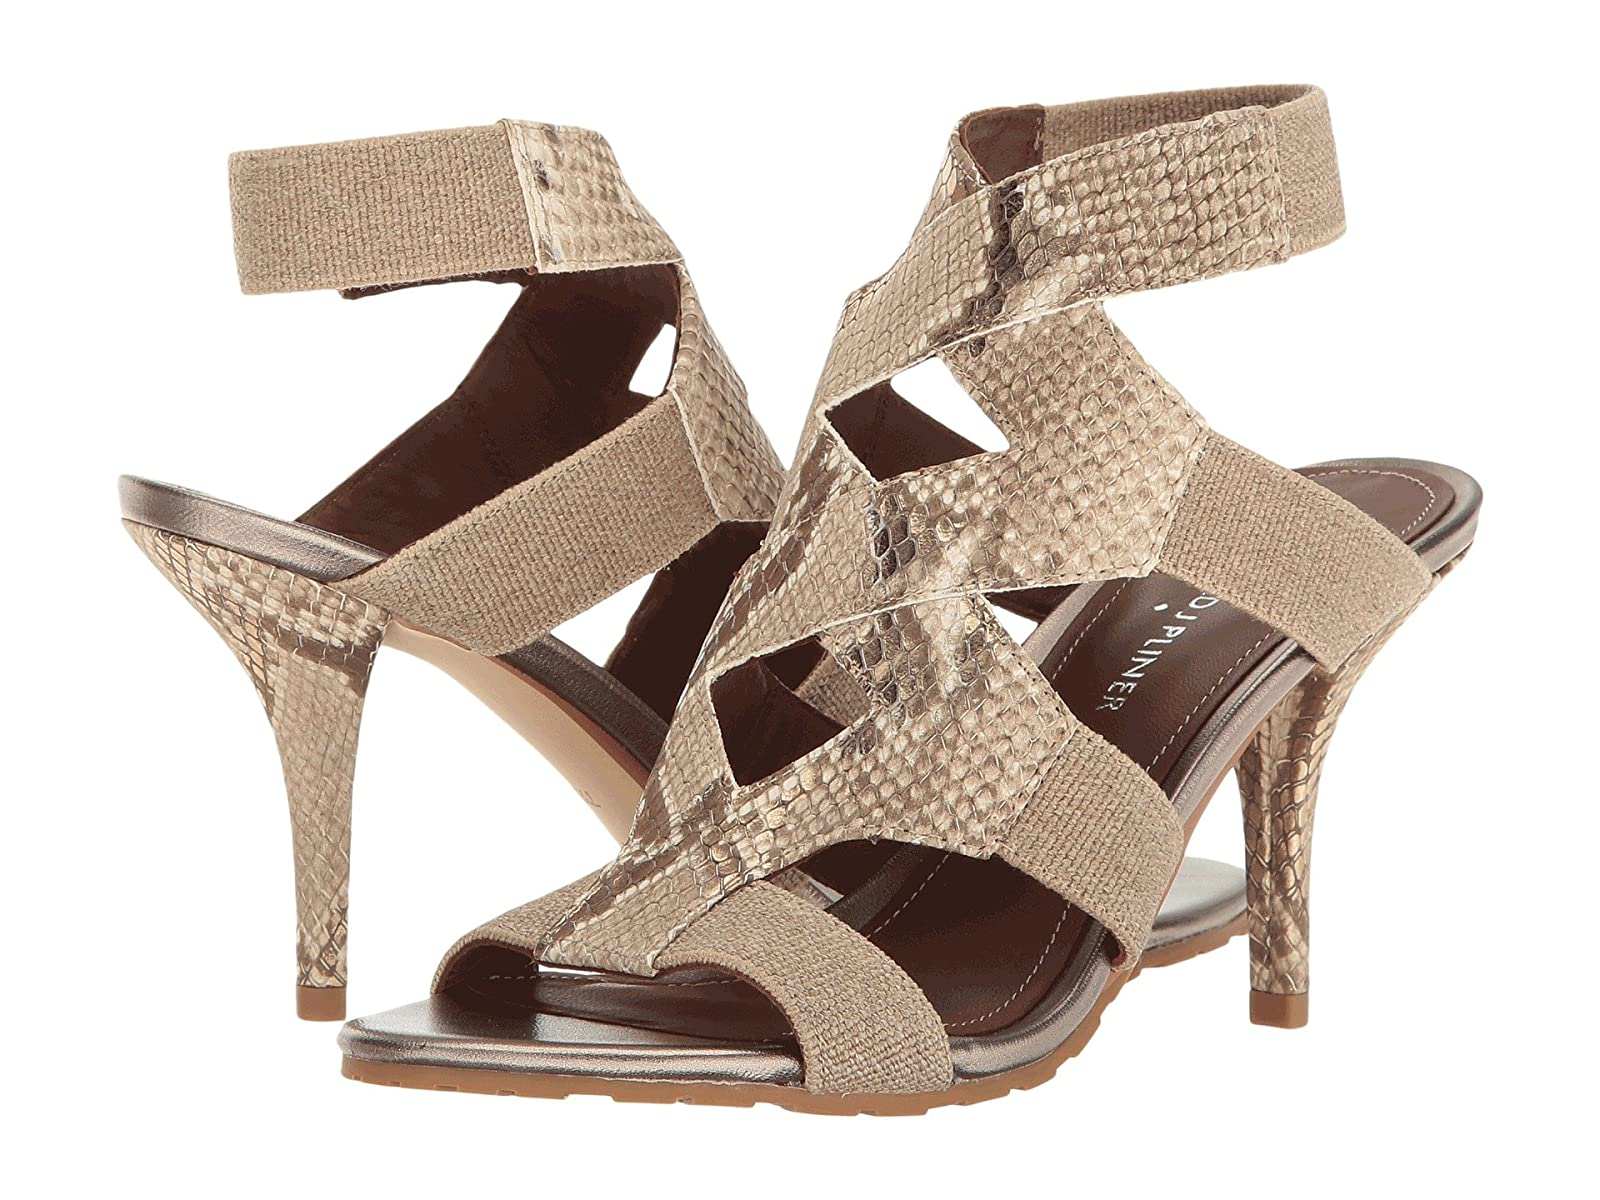 Donald J Pliner GwenCheap and distinctive eye-catching shoes